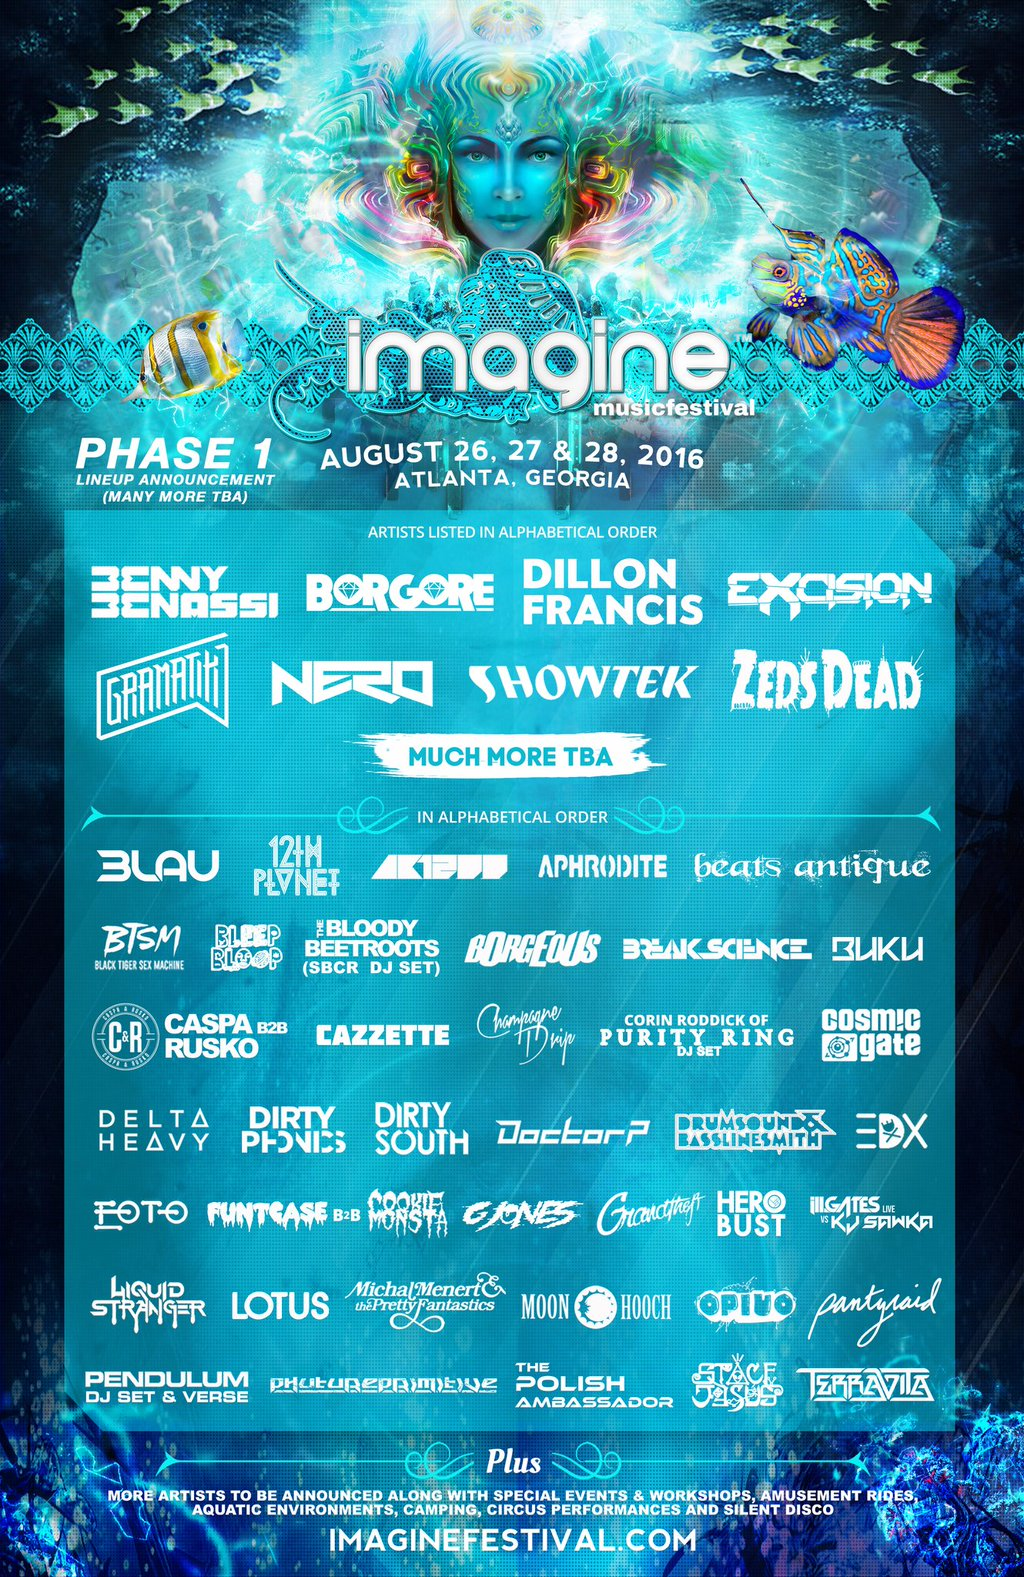 Imagine Music Festival phase 1 lineup. Photo by: Imagine Music Festival